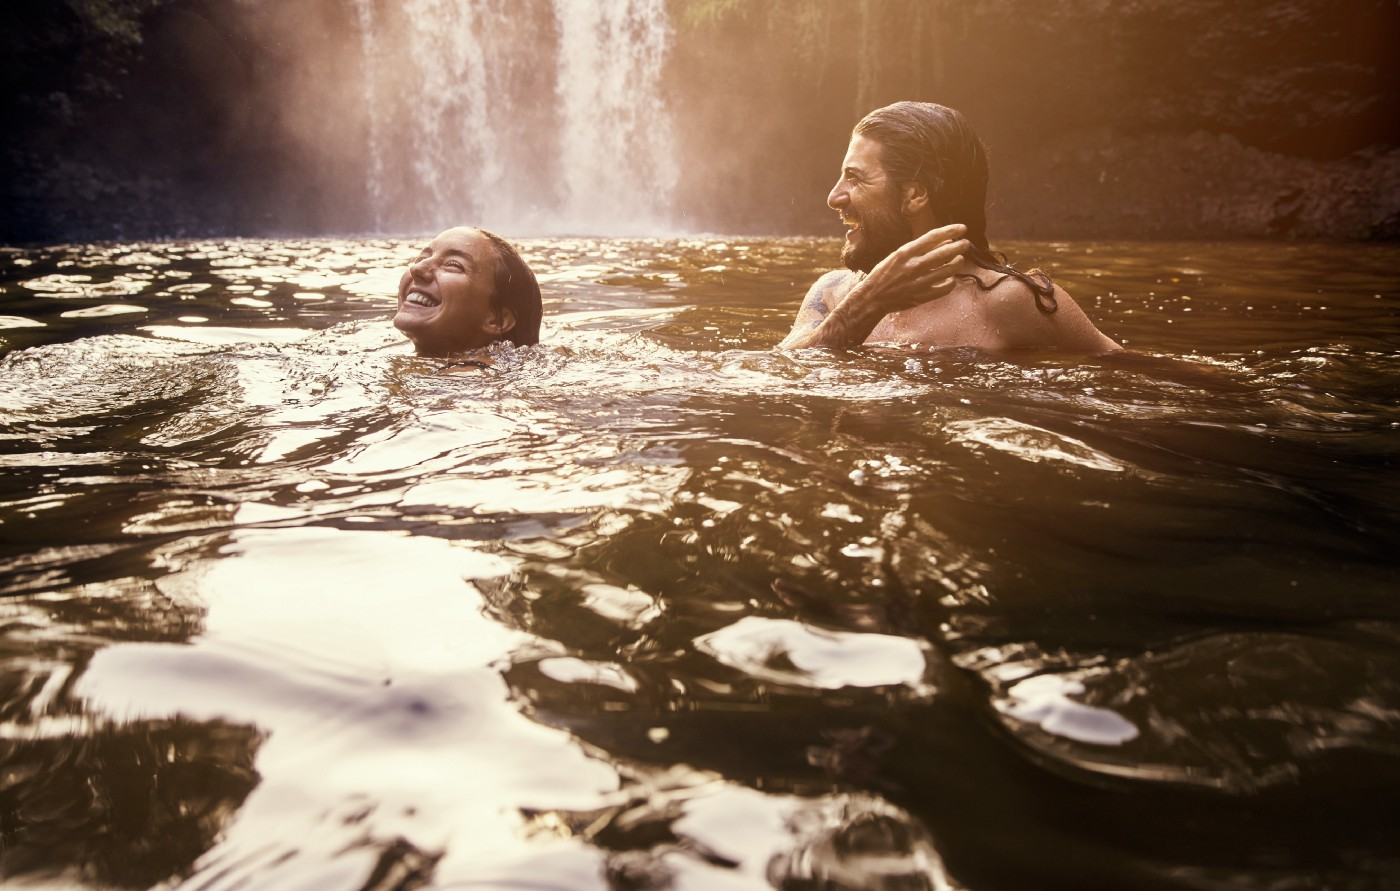 Couple bathing in a scene body of water with a waterfall behind them.